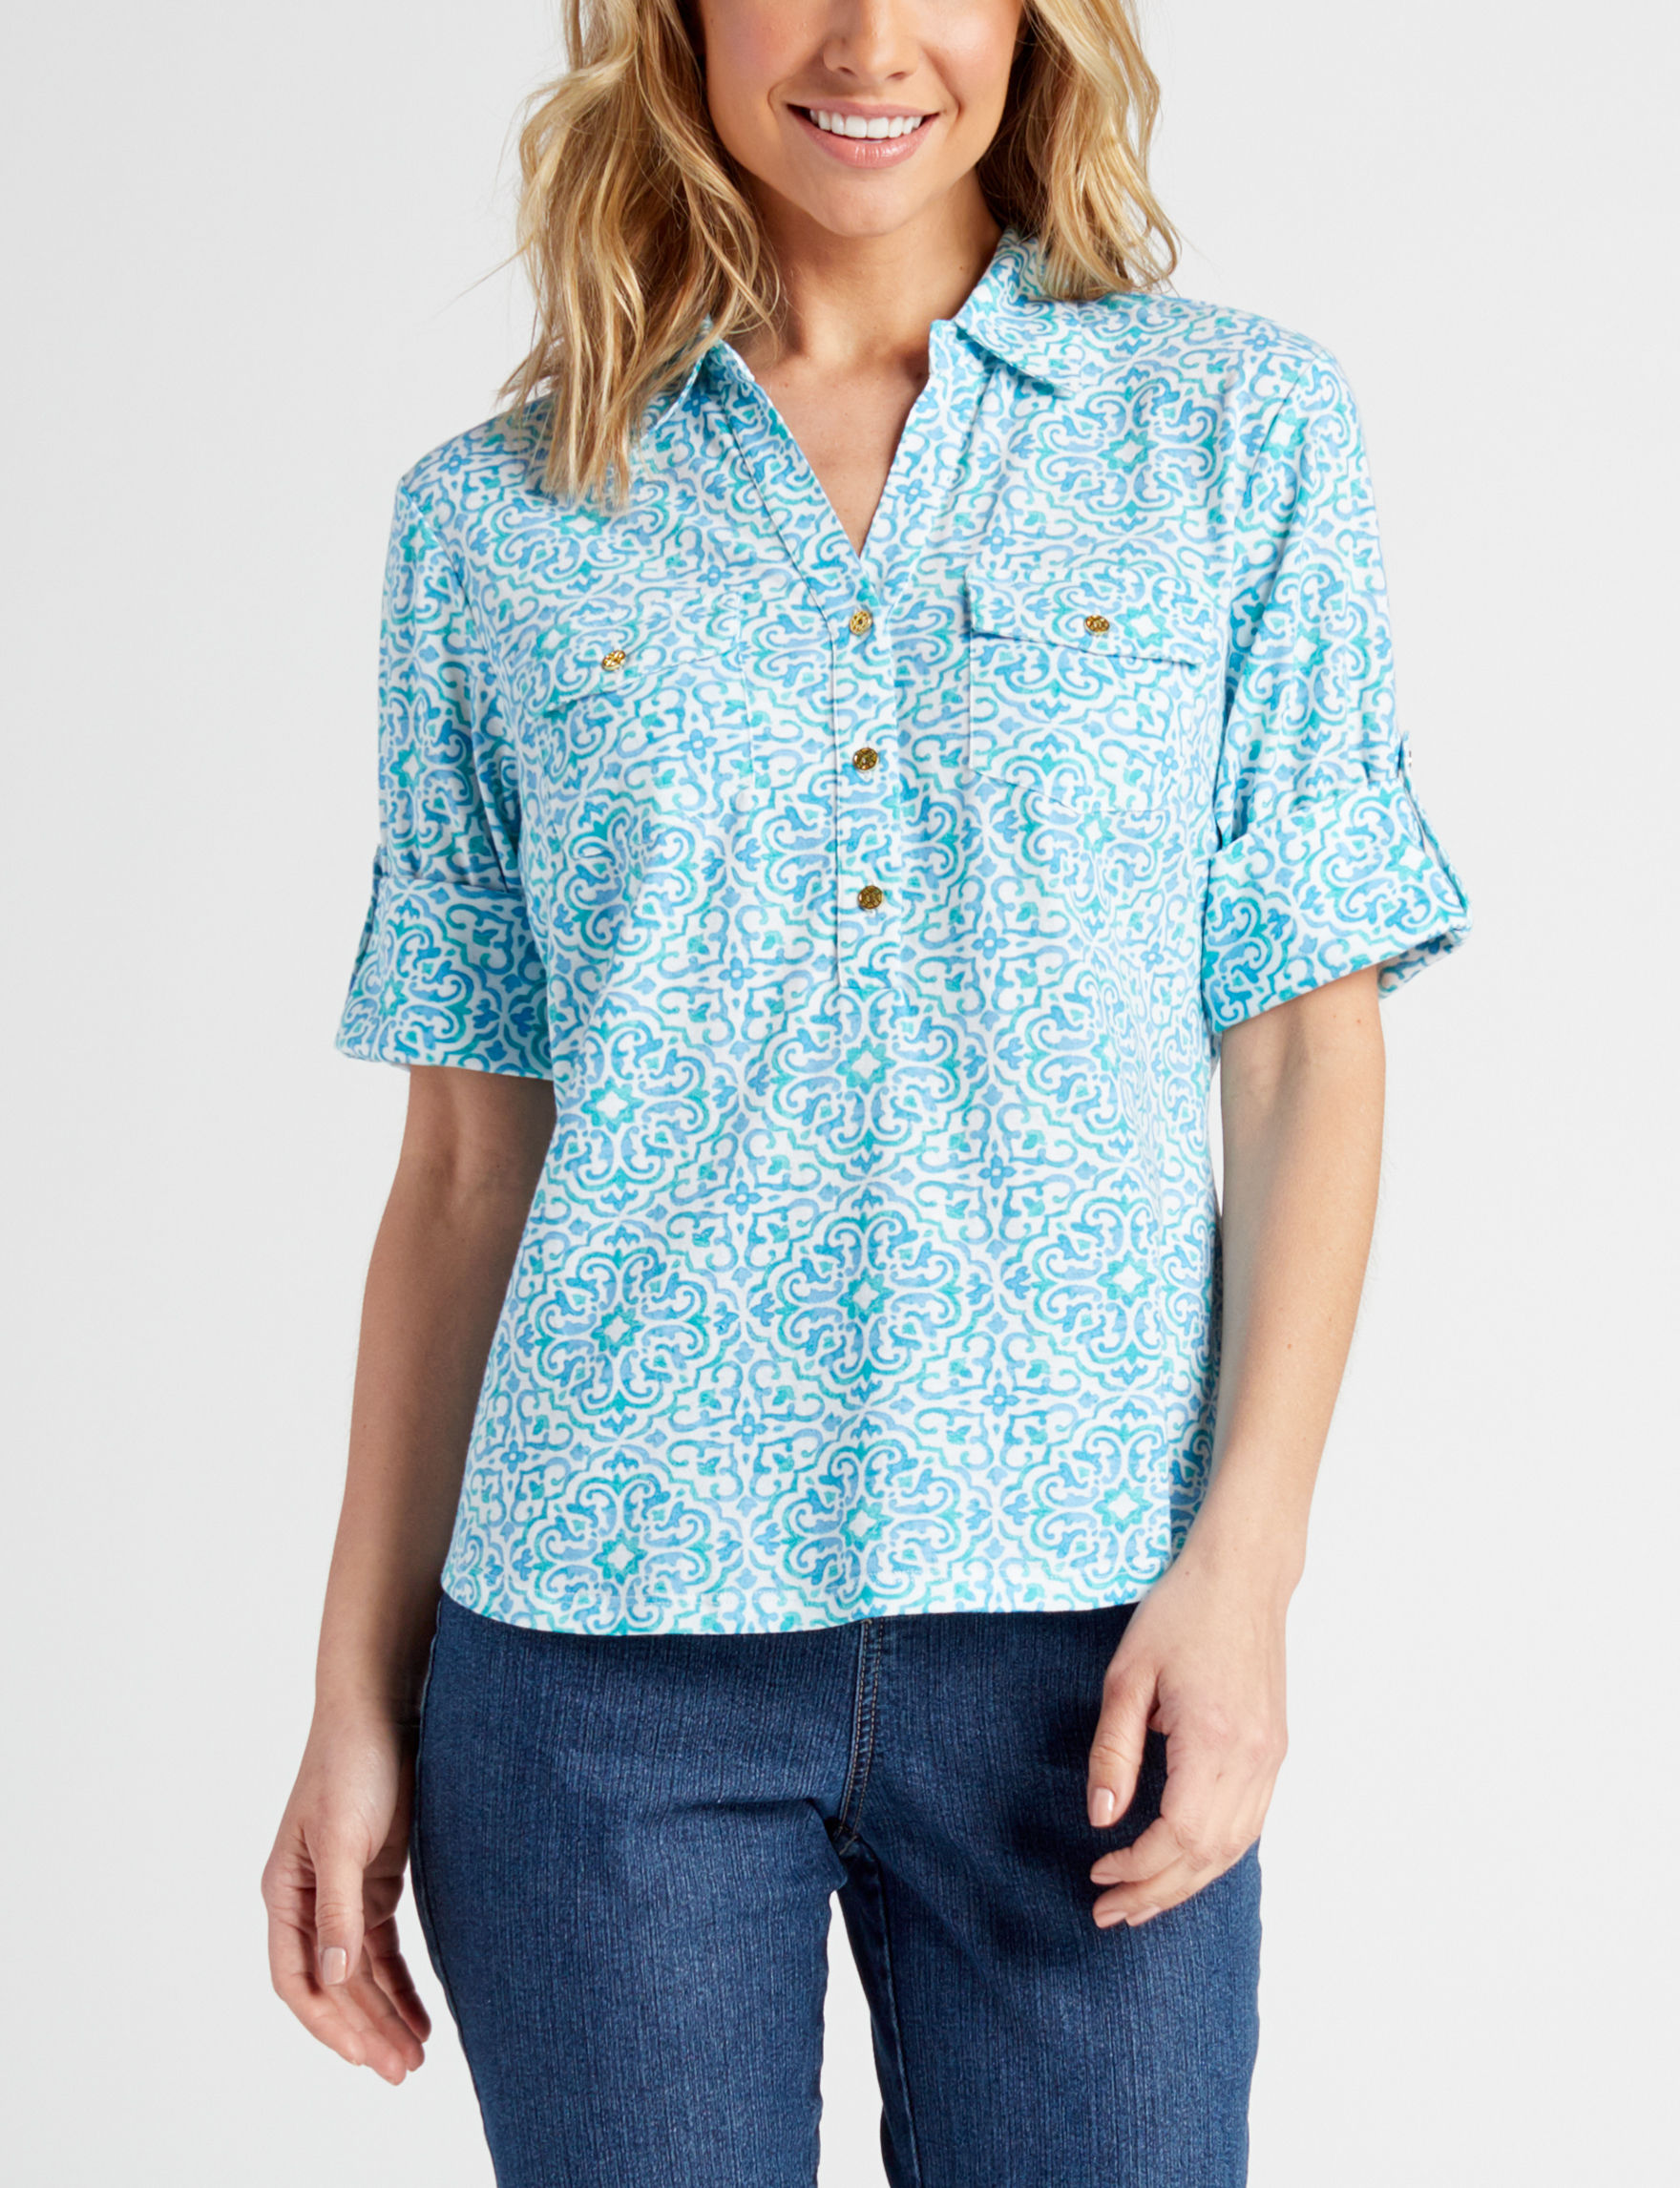 Cathy Daniels Blue Shirts & Blouses